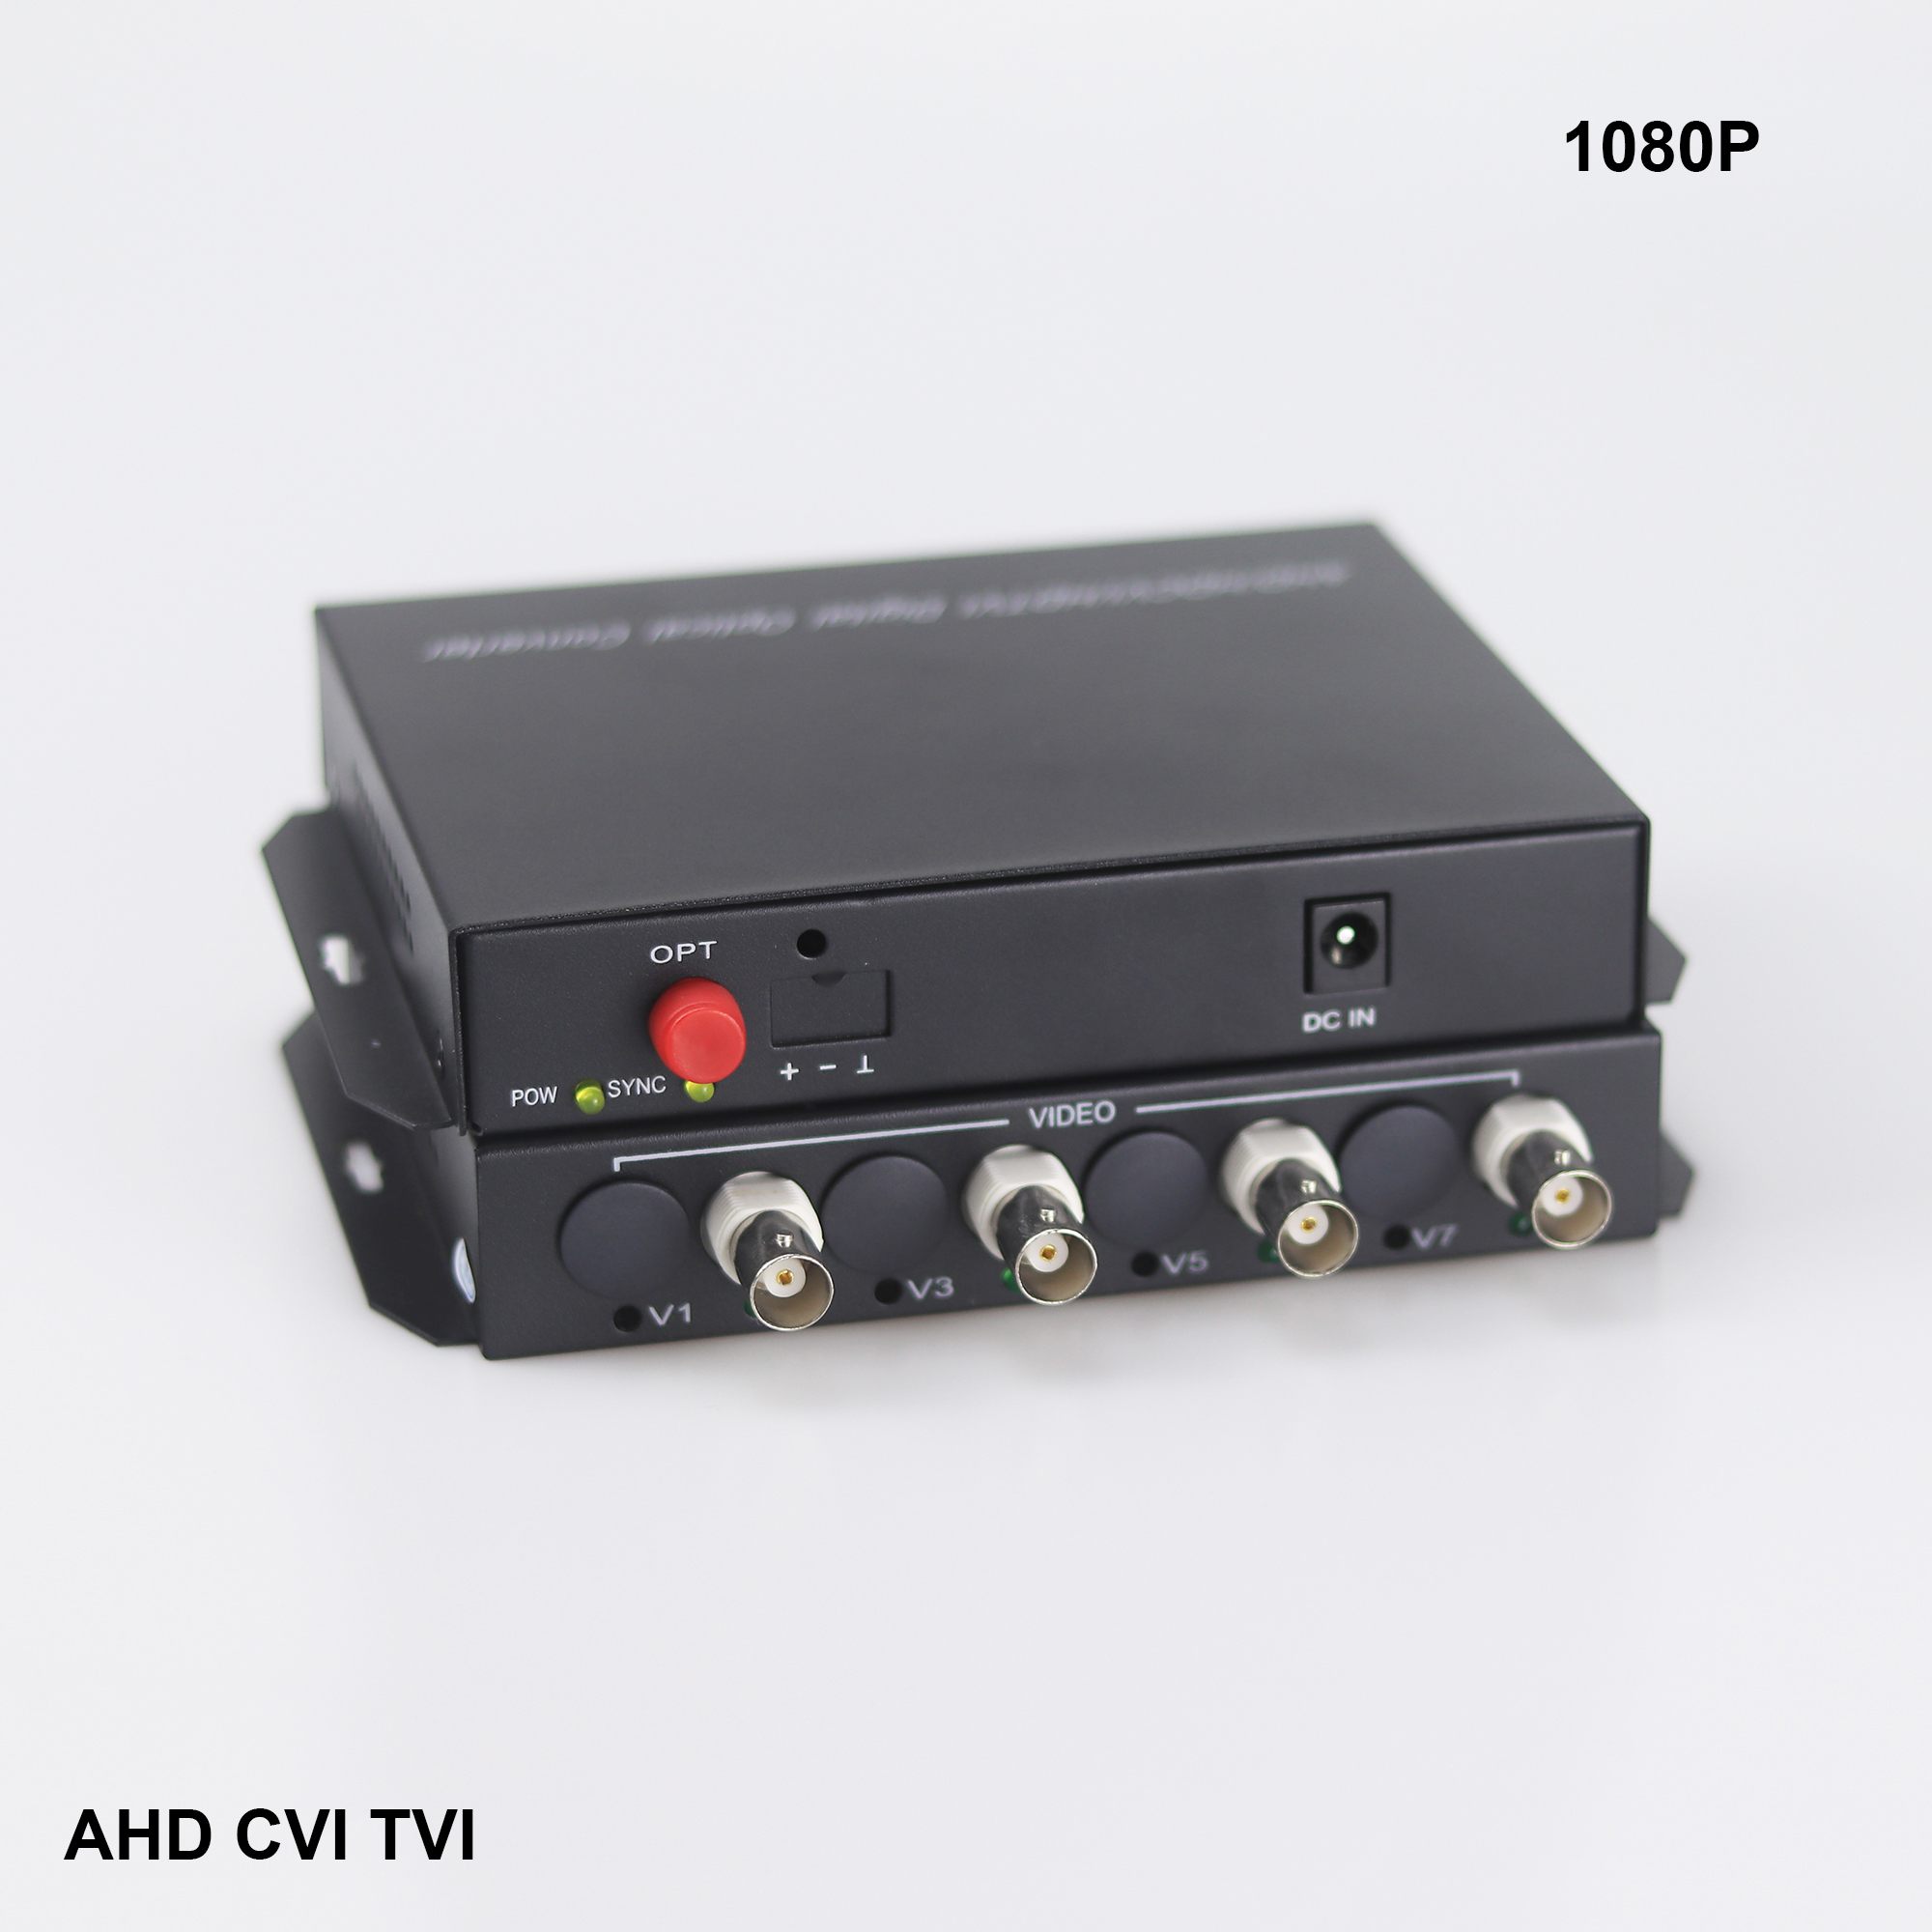 4 CHannel AHD CVI TVI 1080P video Fiber optical converter Hikivsion dahuacamera FC fiber optic transmitter 4 channel video optical converter fiber optic video optical transmitter receiver 4ch rs485 data ahd cvi tvi cvbs coaxial fiber